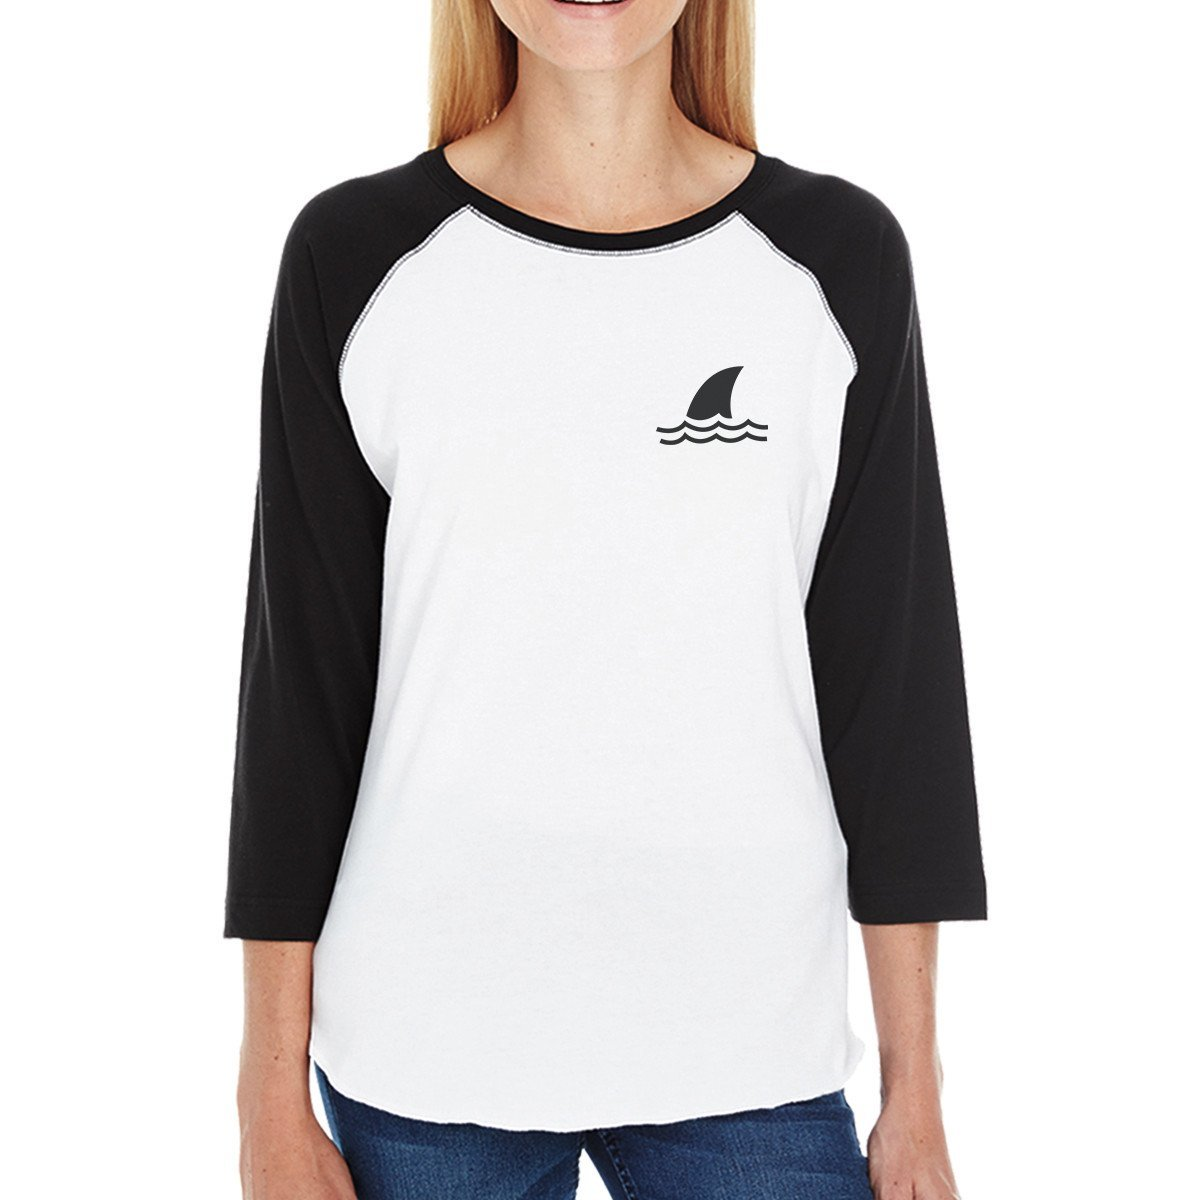 Women's Cool Black Sleeve Baseball Raglan Tee by TSF Design